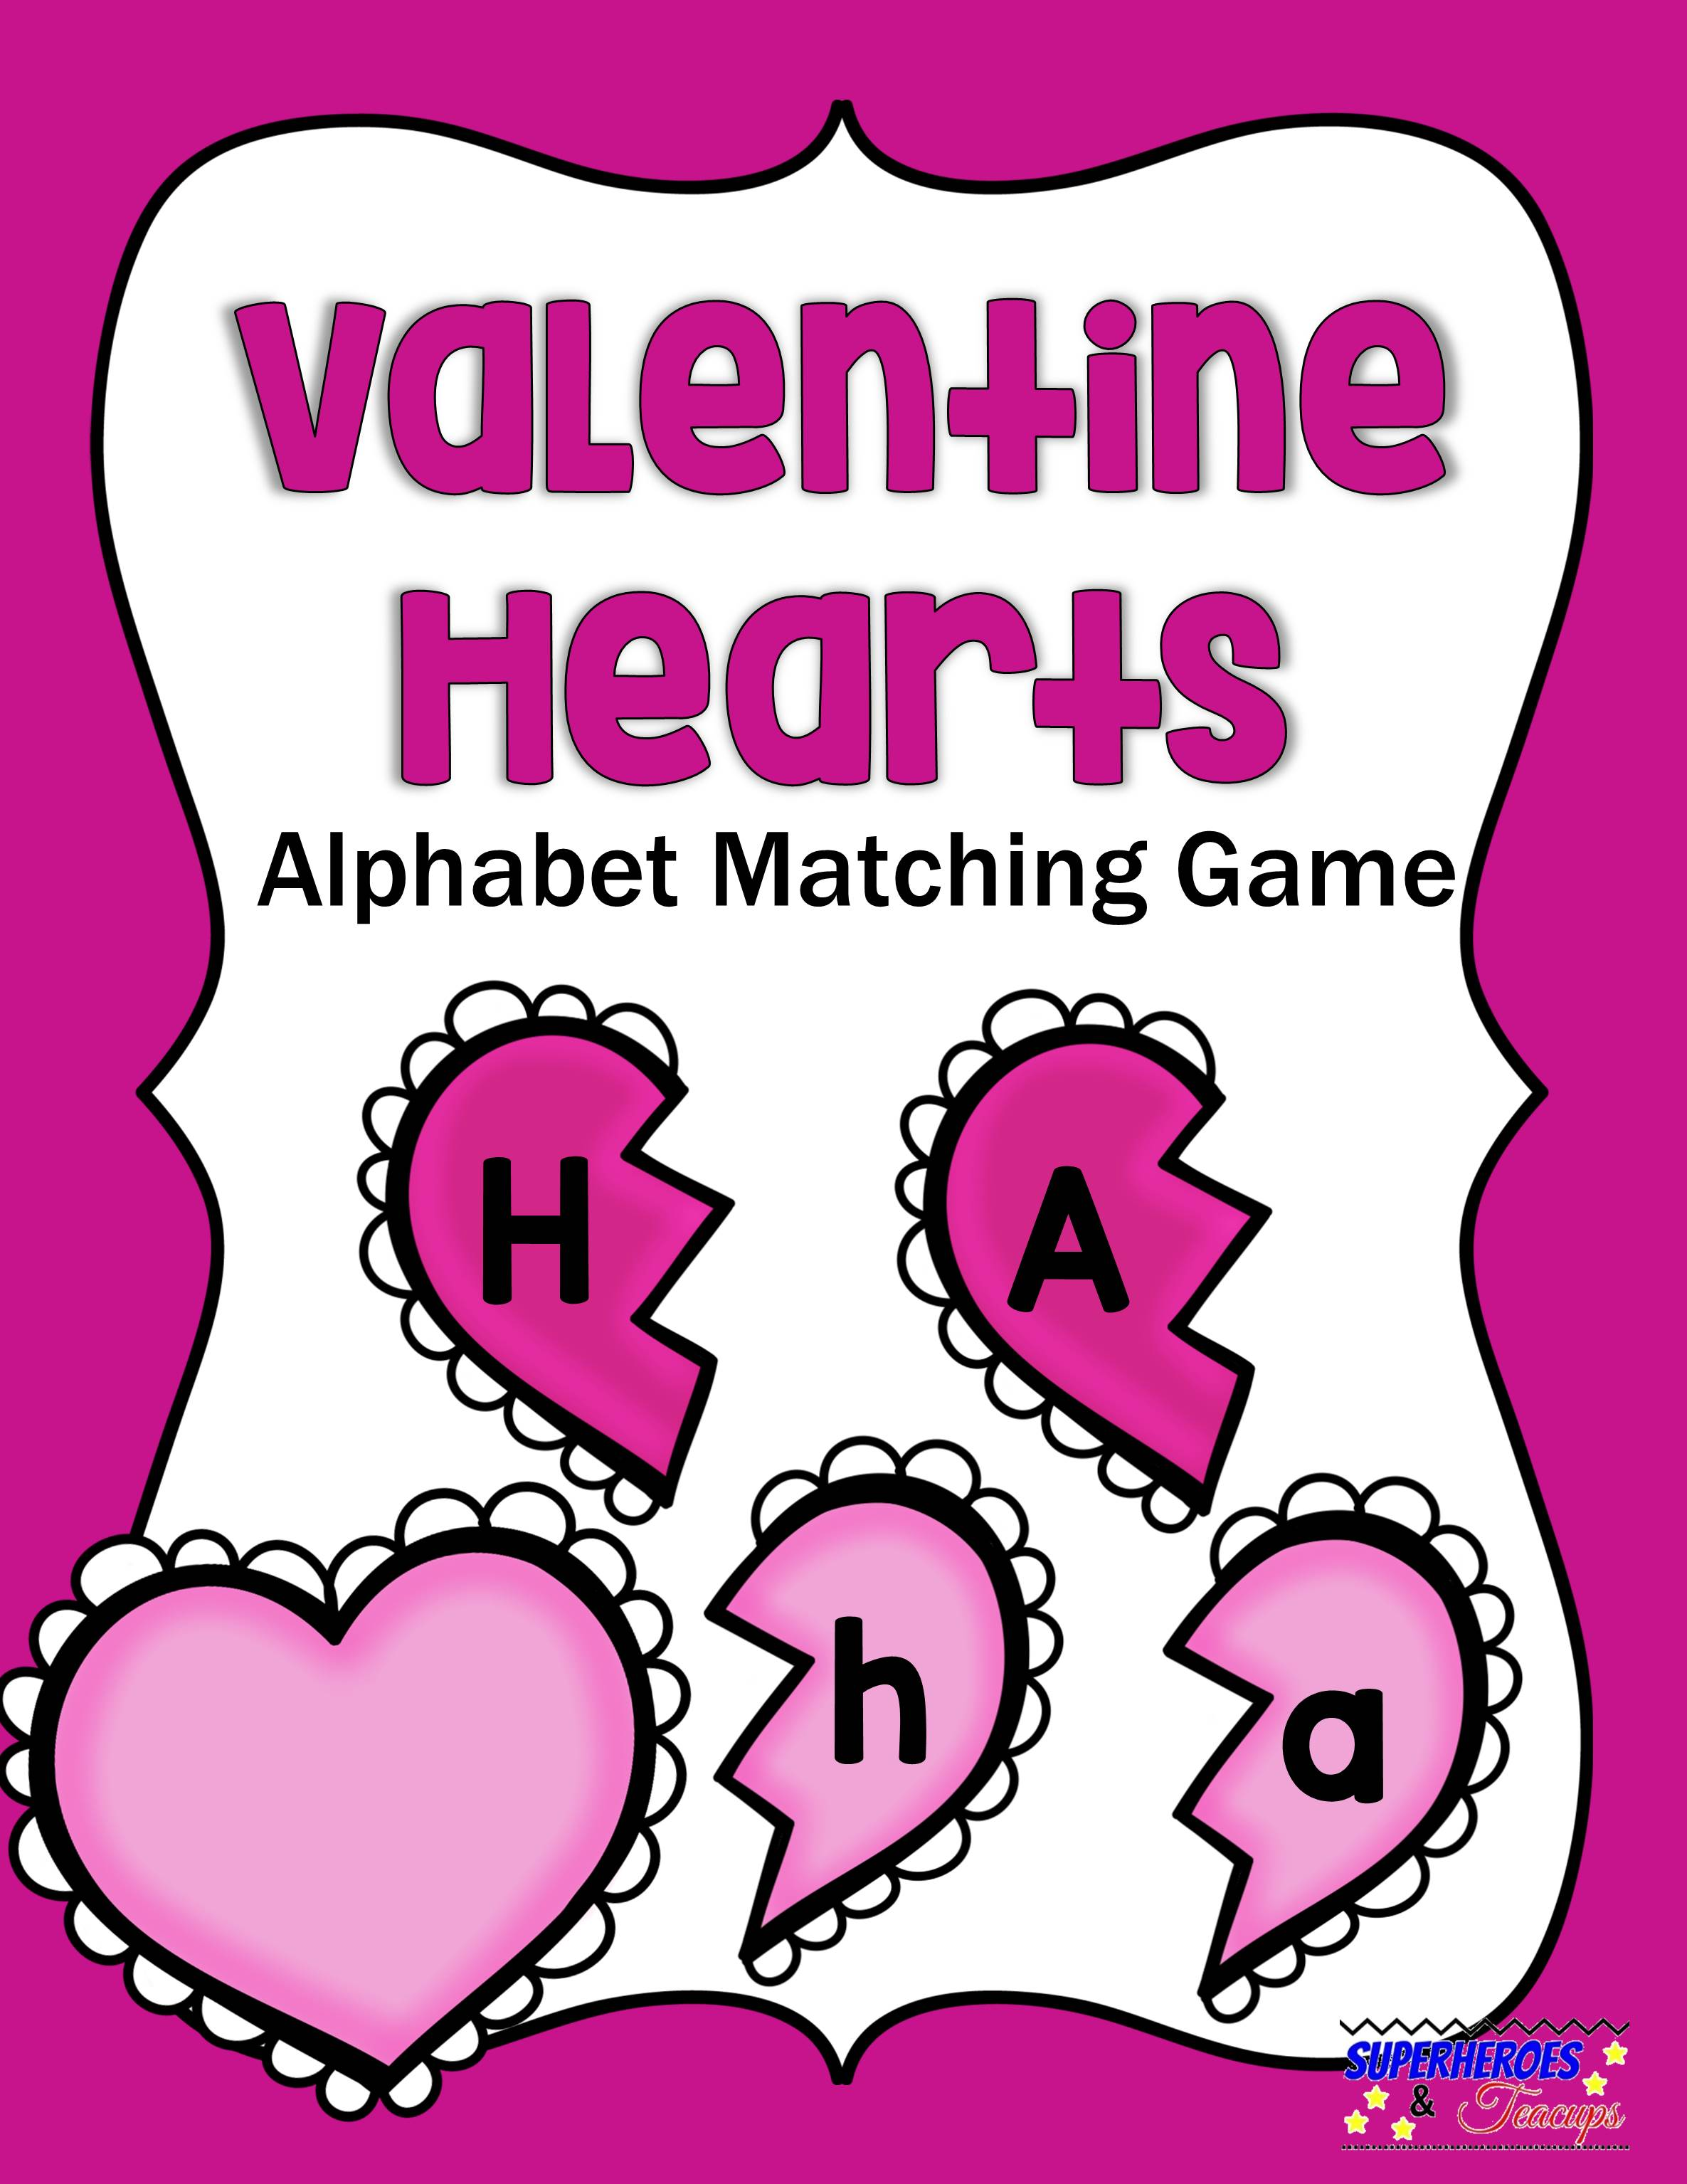 image regarding Printable Valentine Hearts titled Valentine Hearts Alphabet Matching Activity Totally free Printable No cost